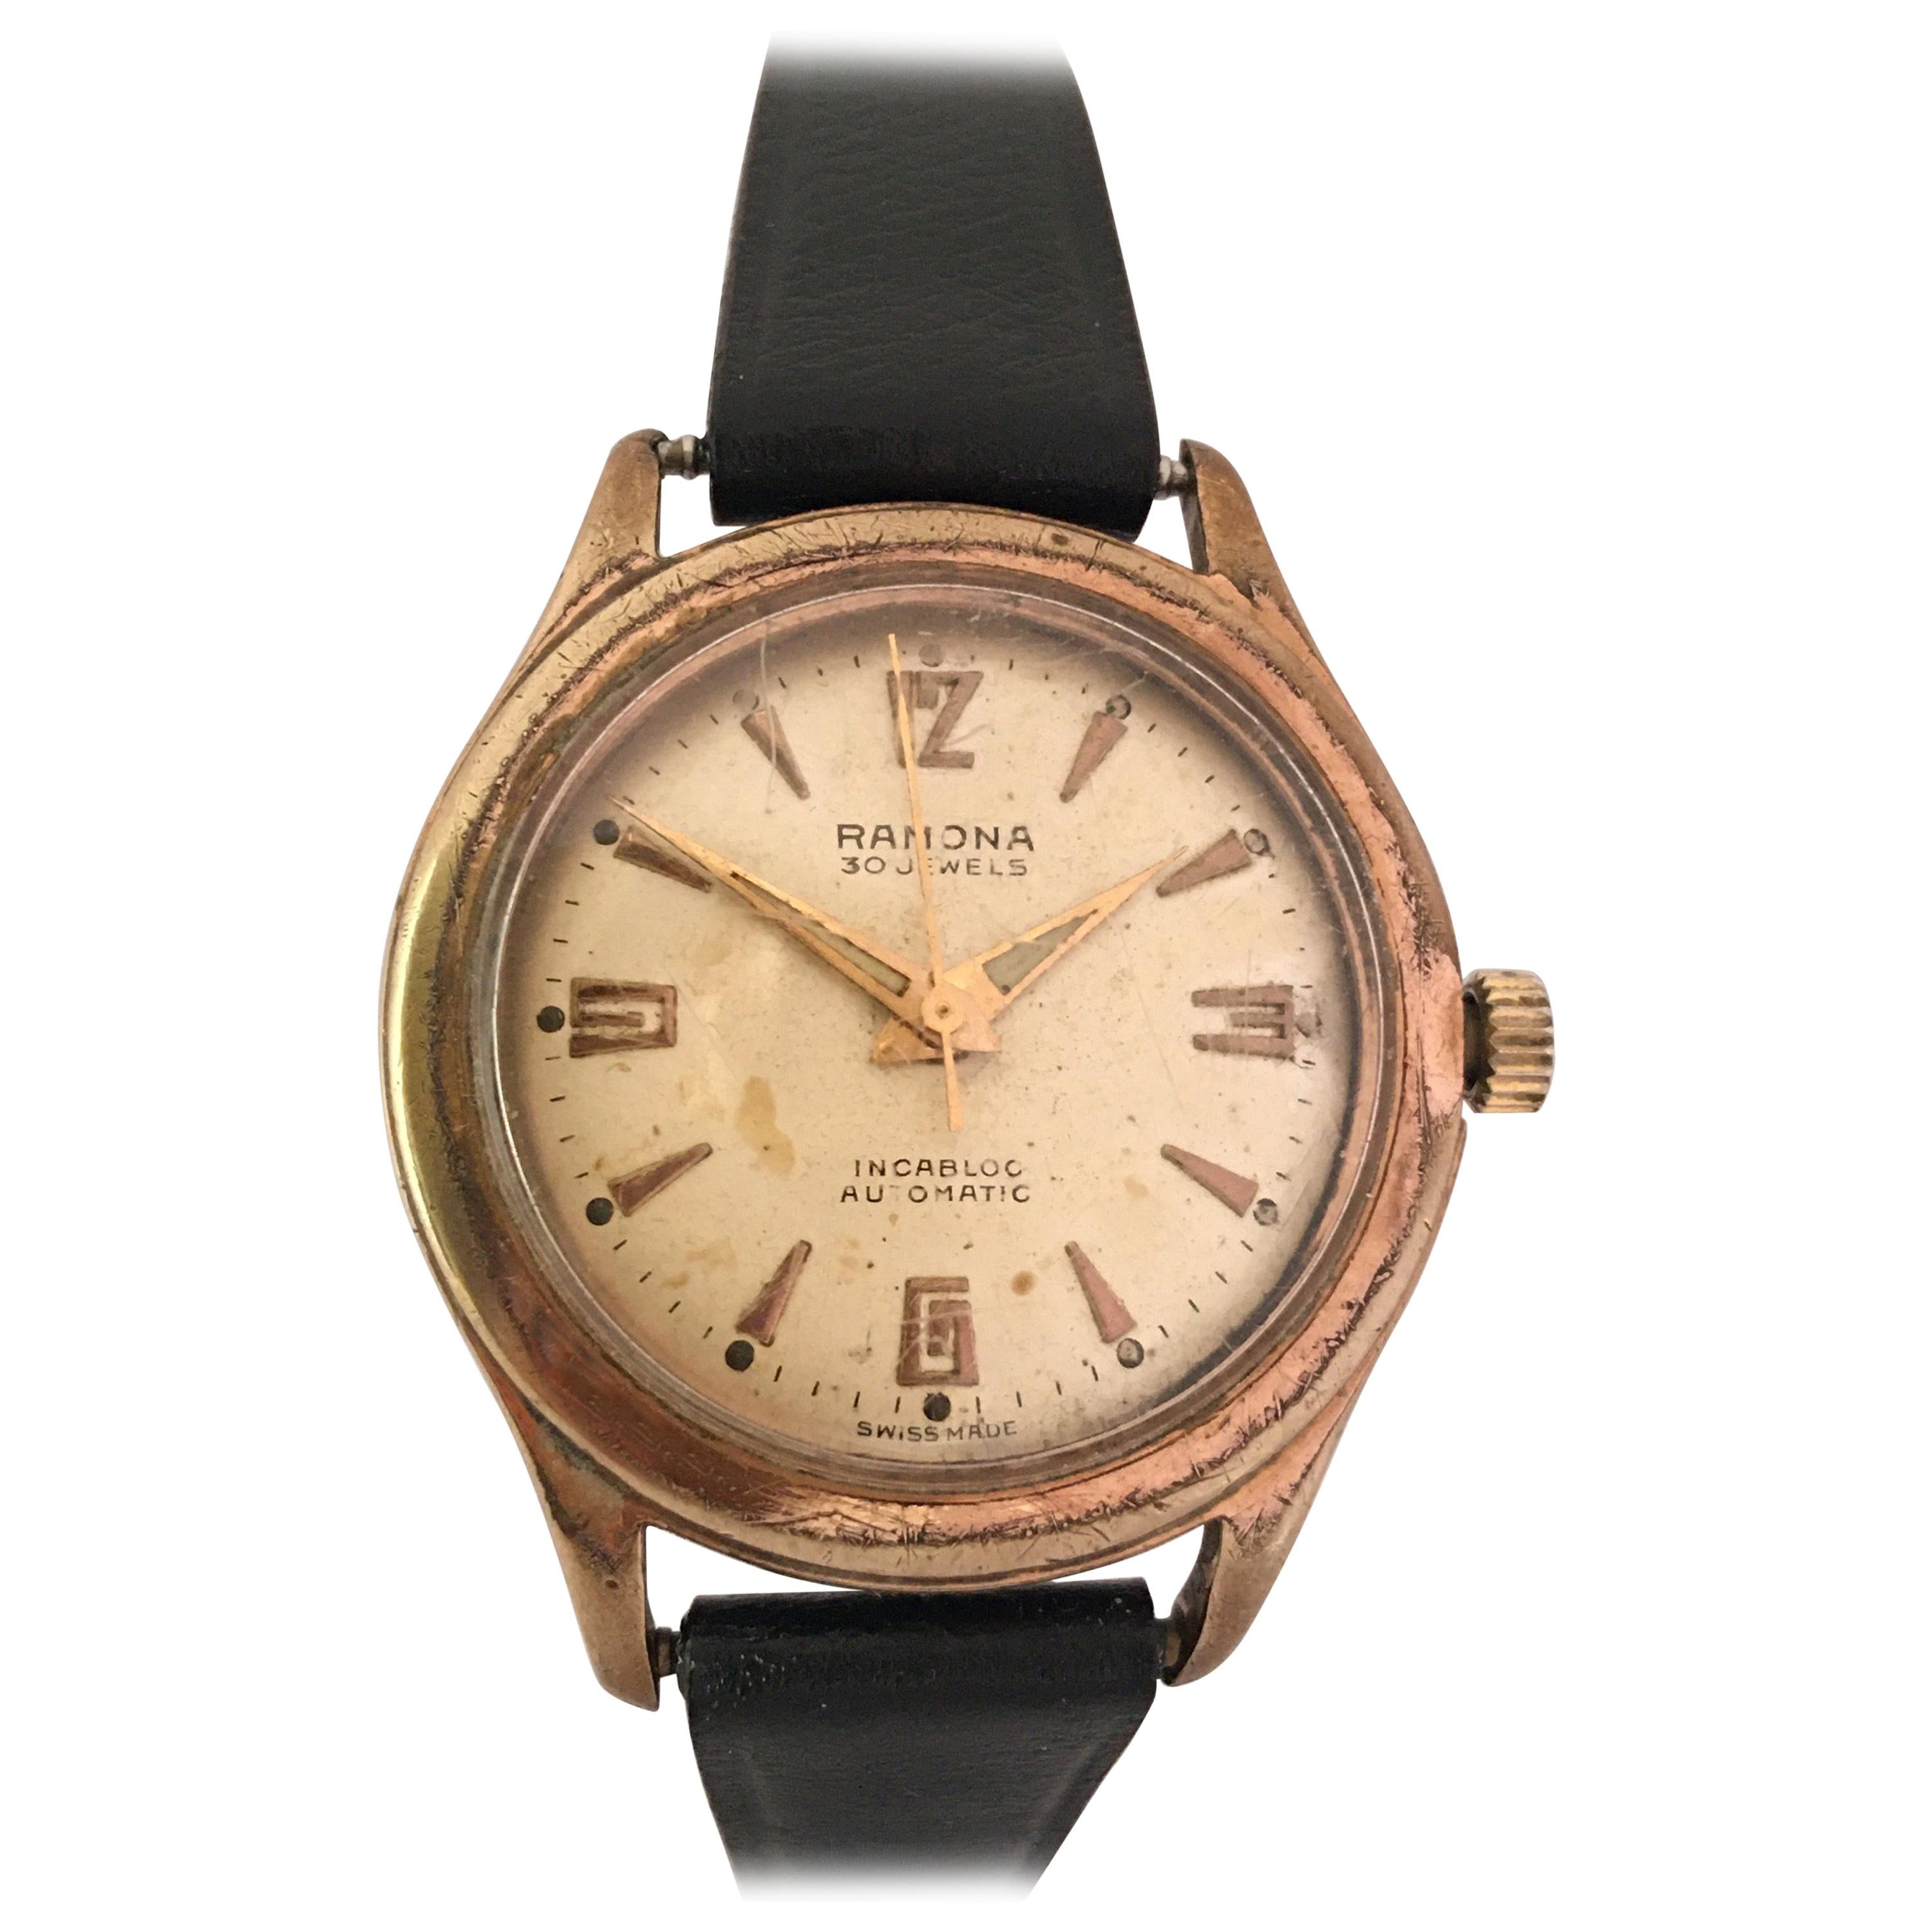 Vintage 1950s Gold-Plated and Stainless Steel Back Swiss Automatic Watch